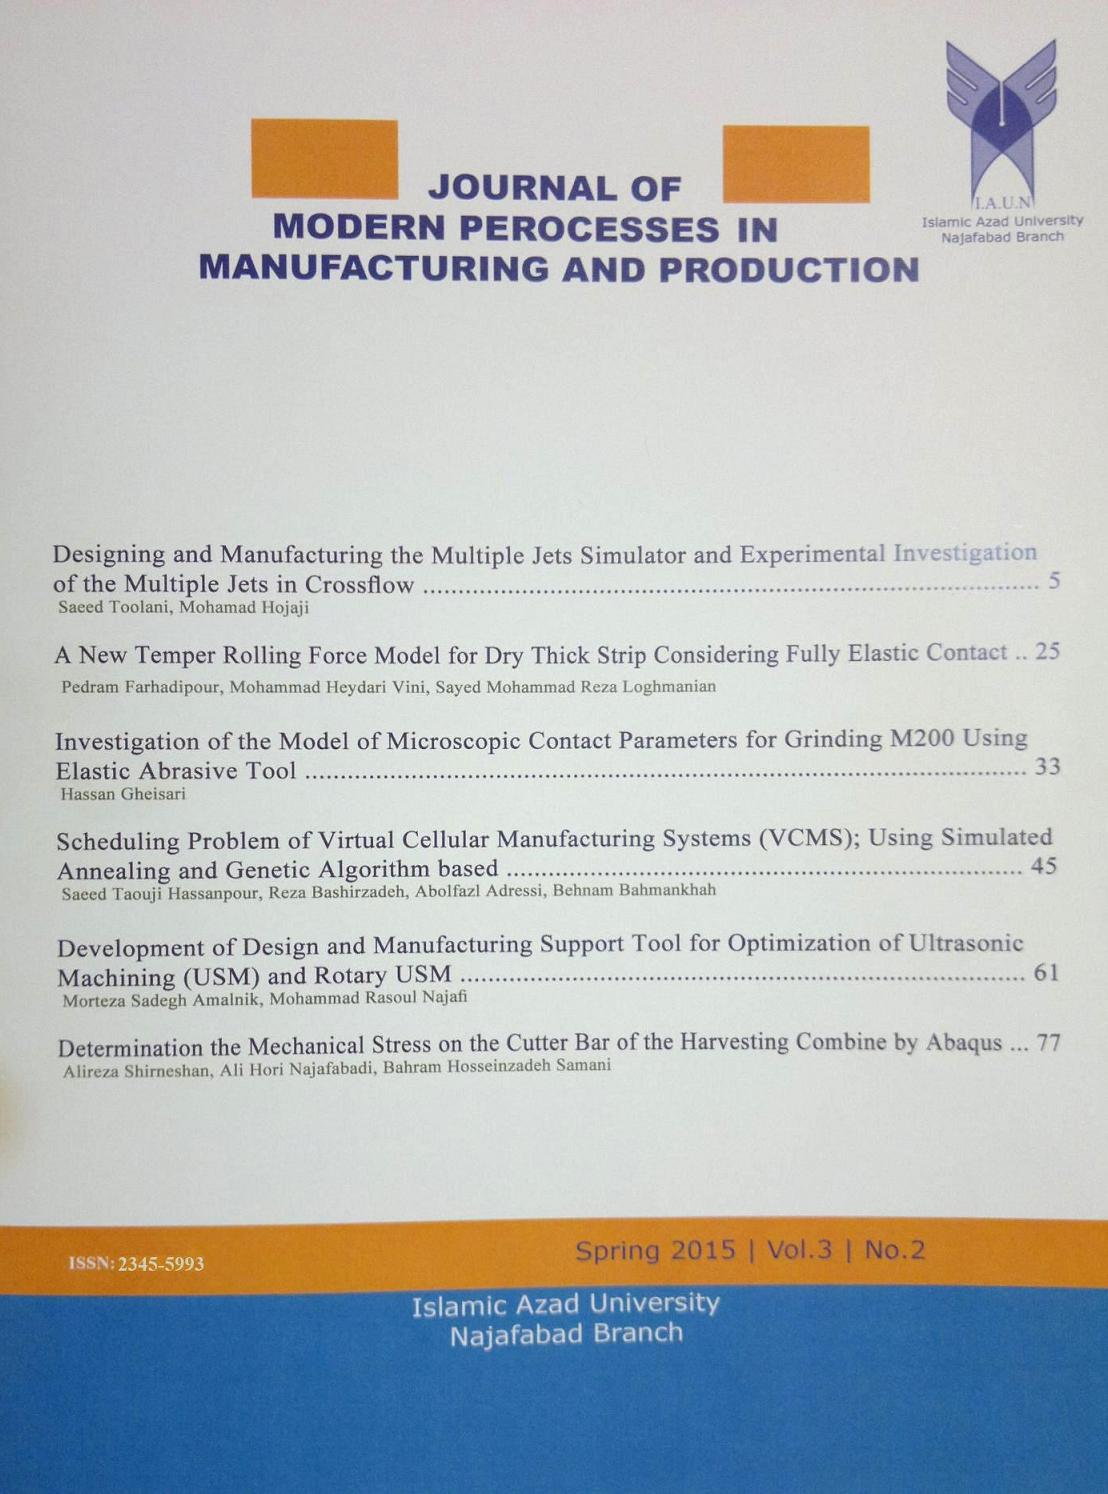 Journal of Modern Processes in Manufacturing and Production